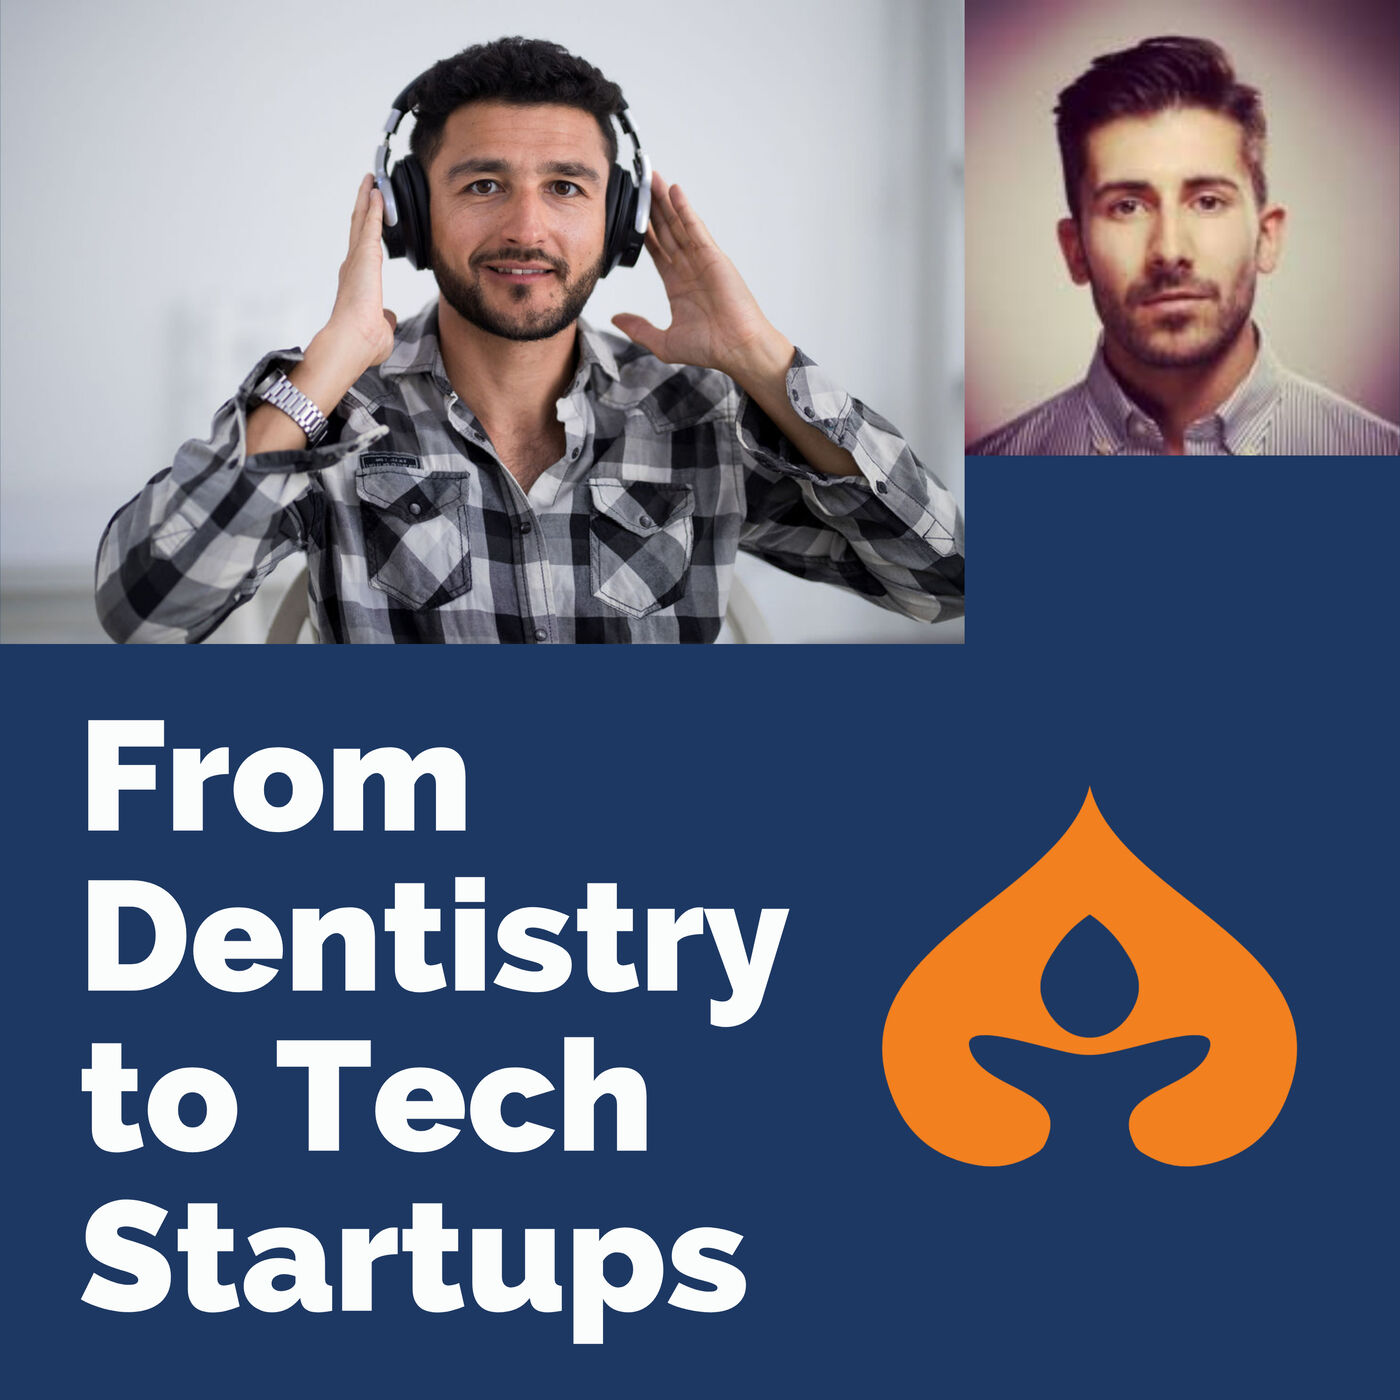 From dentistry to tech startups through testing and validating career ideas - Tom Youngs